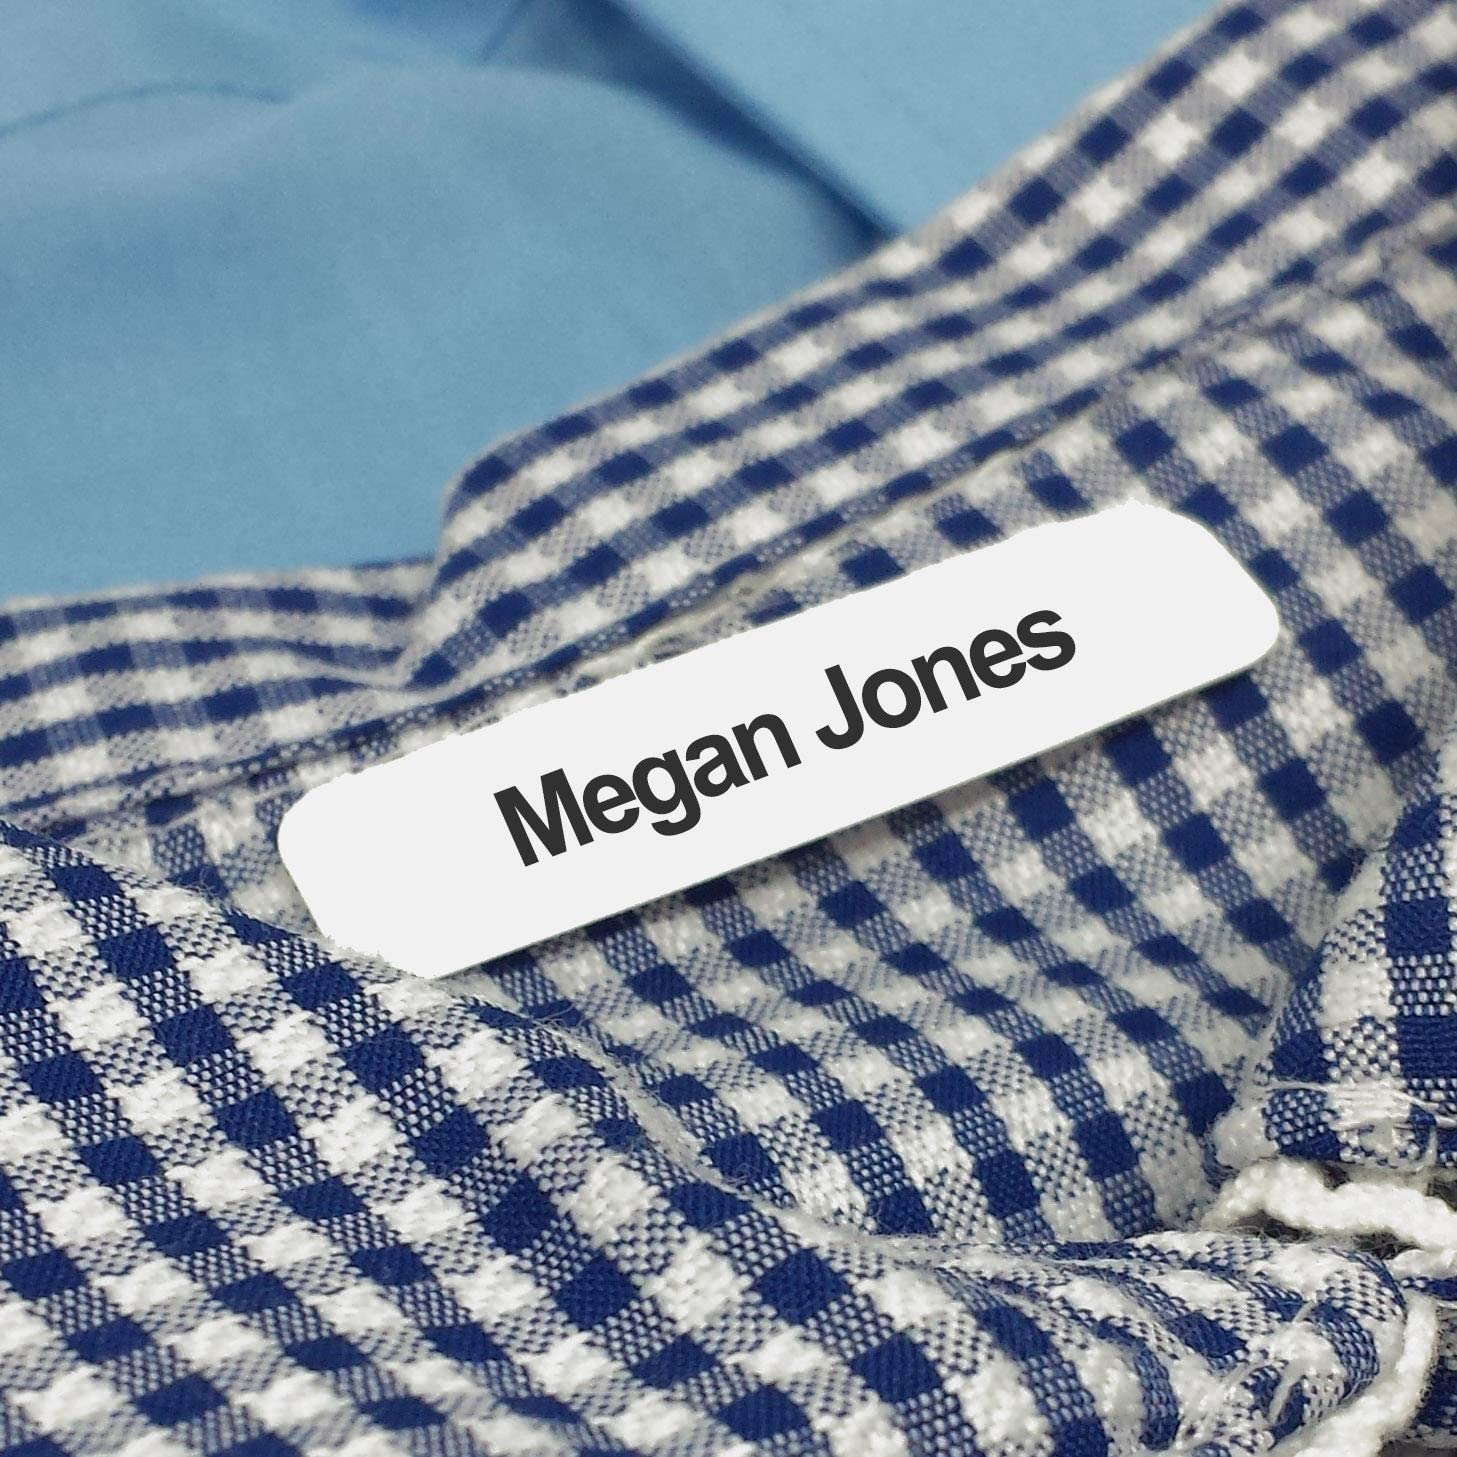 50 Printed Iron-on Name Labels/Tags for School, Care, Nursing or Camp